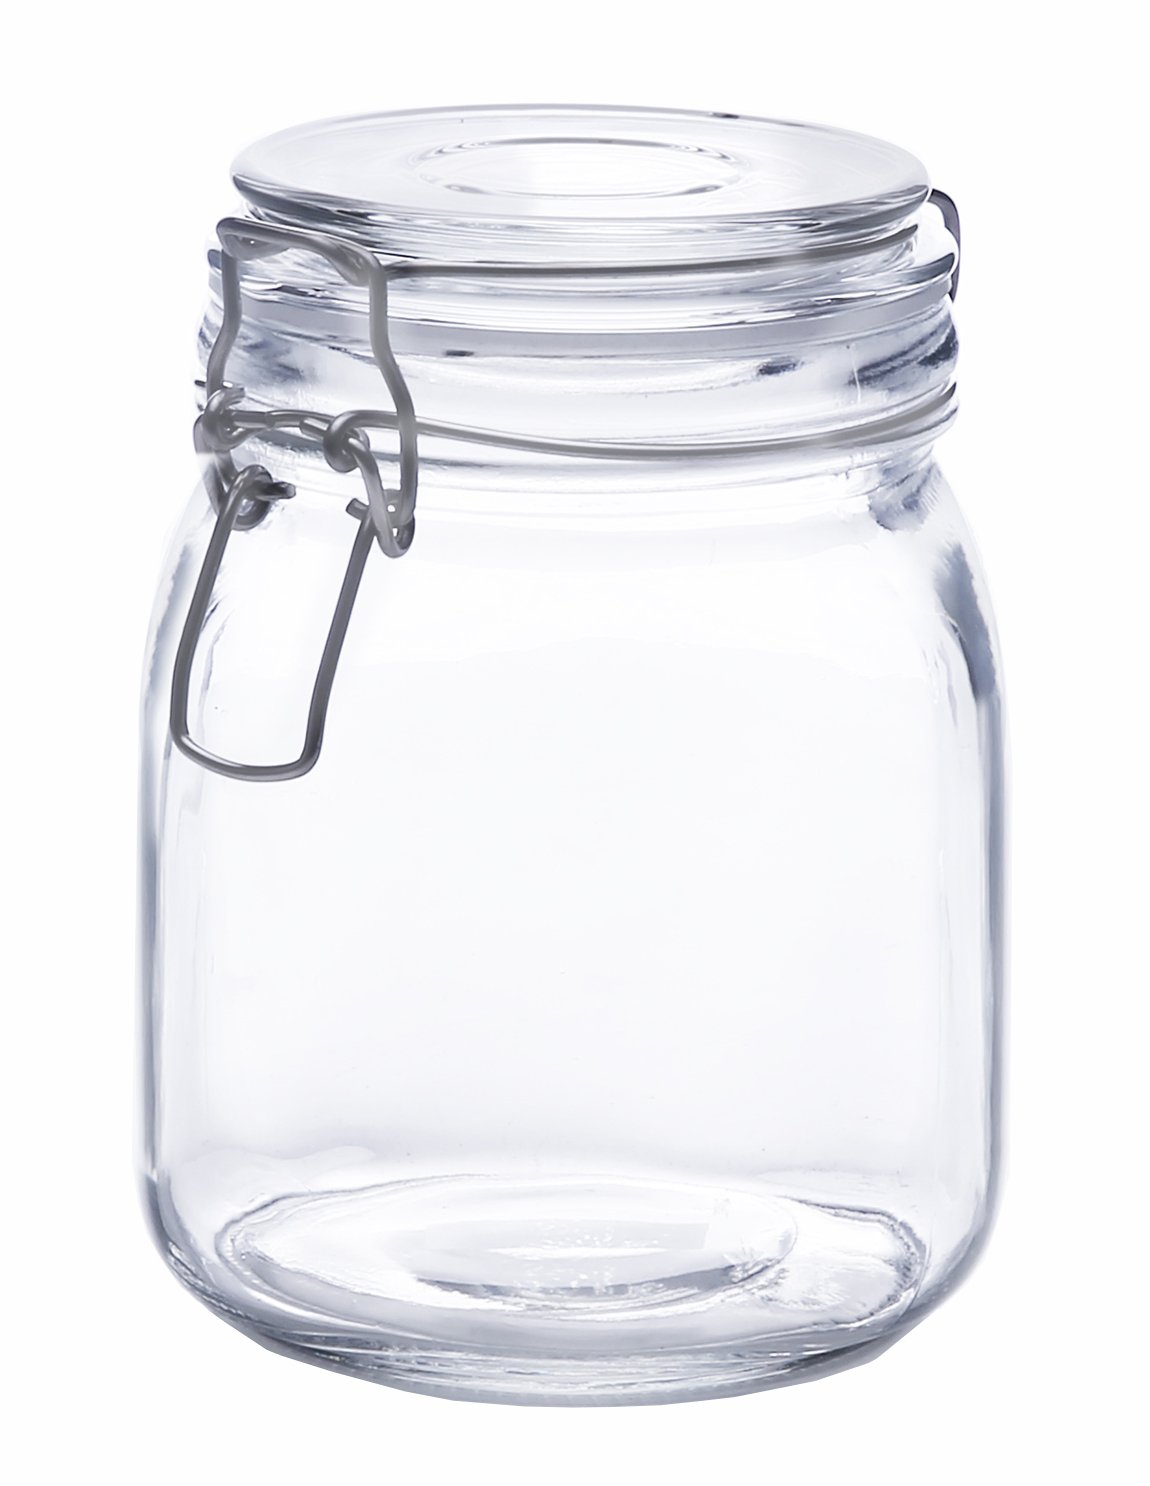 Kinetic 56007 GoGreen Canning Jar, 35 oz, Glass by Kinetic